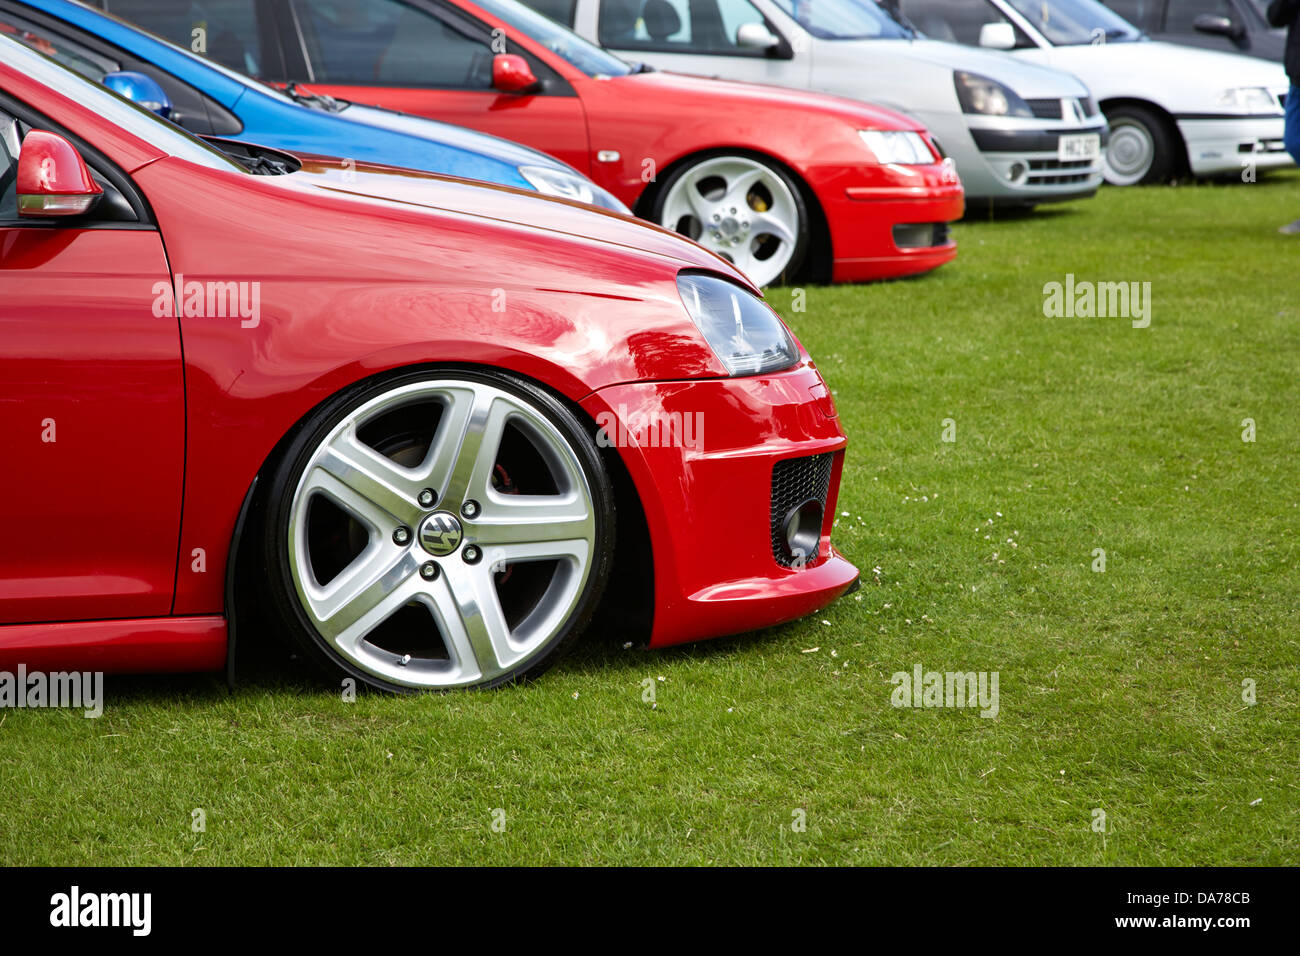 lowered modified custom performance car show county down northern ireland uk - Stock Image